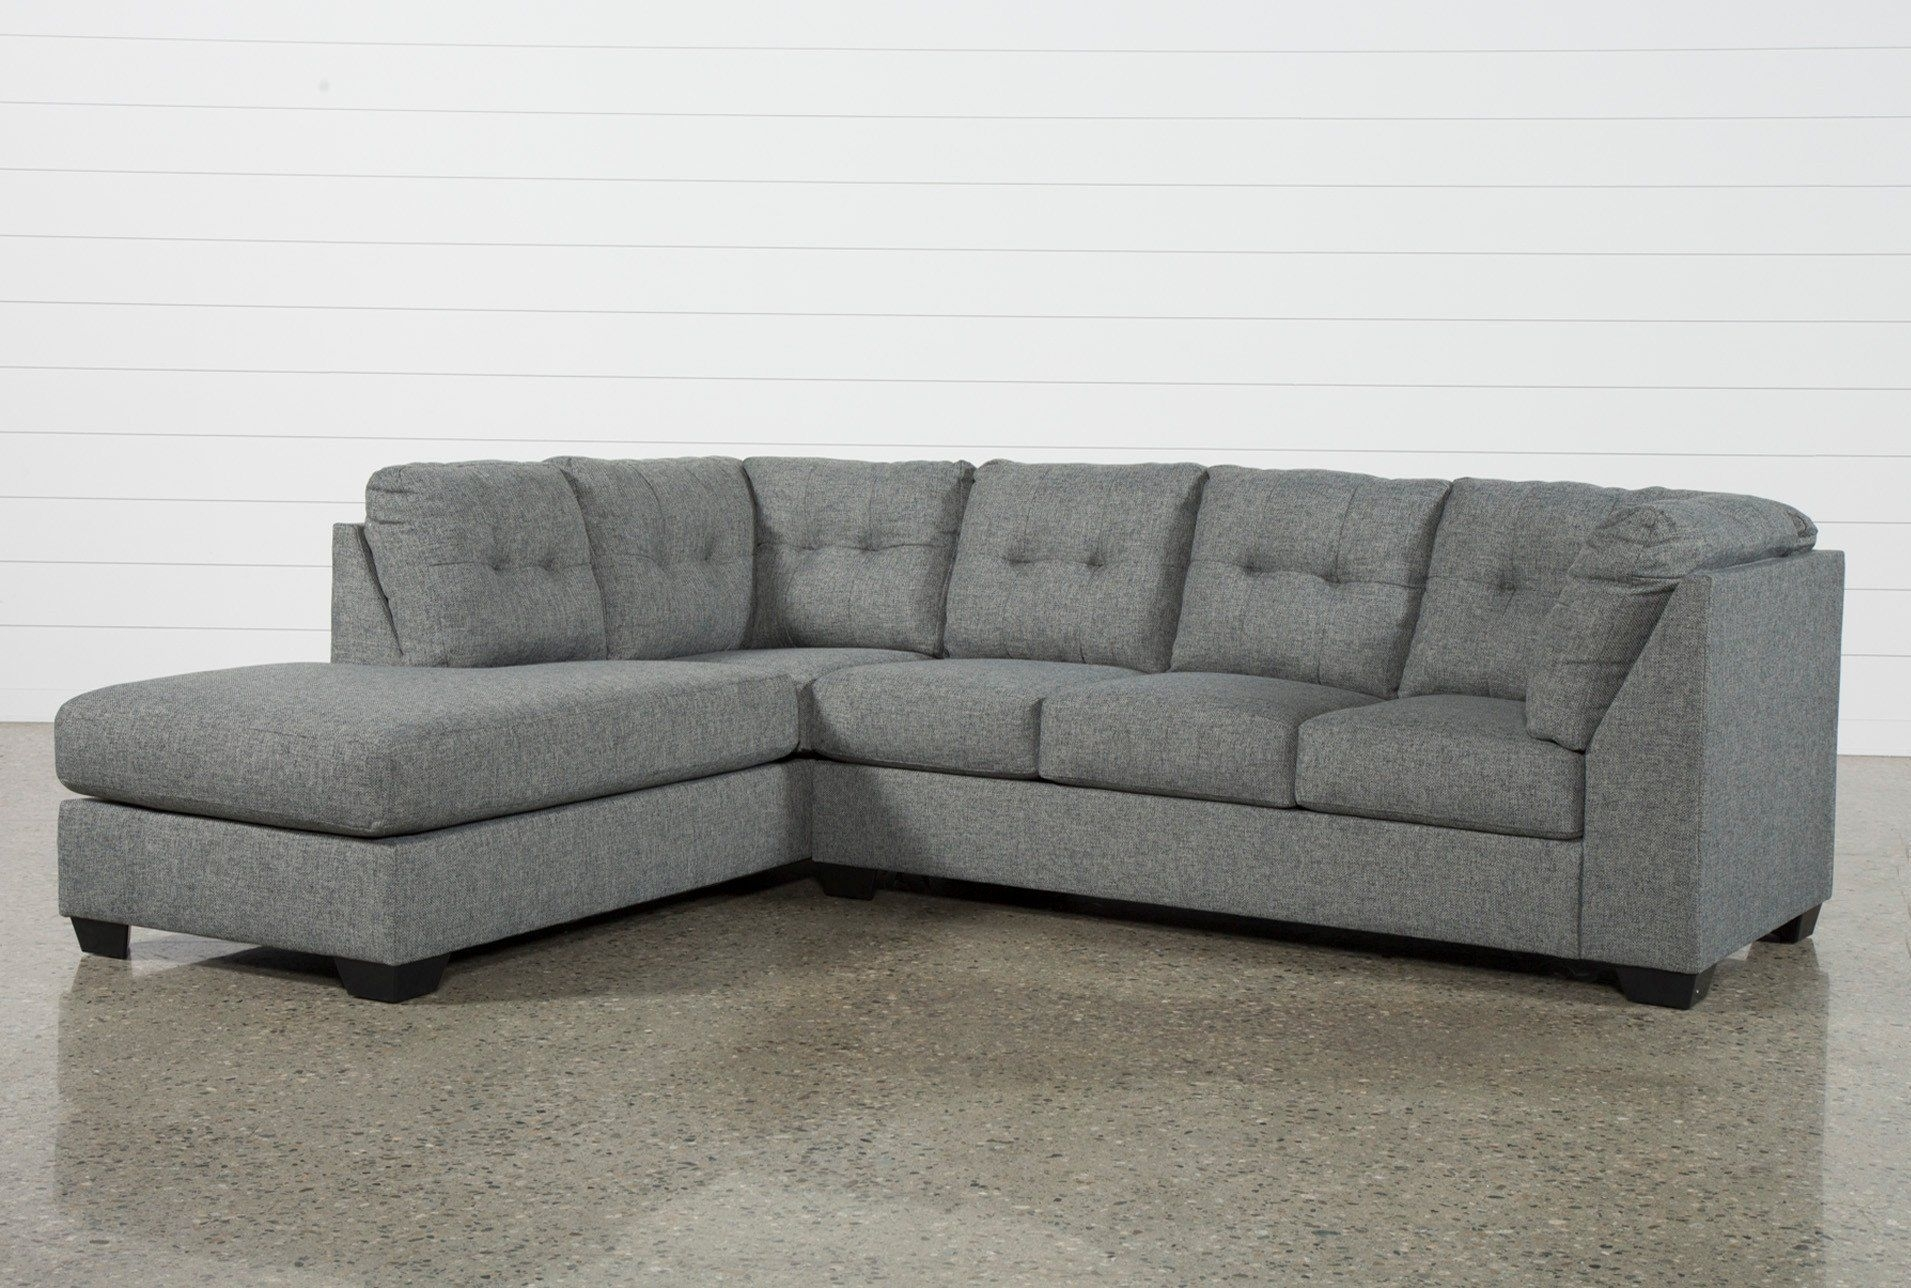 Cosmos Grey 2 Piece Sectional W/laf Chaise | Quilling | Pinterest in Cosmos Grey 2 Piece Sectionals With Raf Chaise (Image 6 of 30)